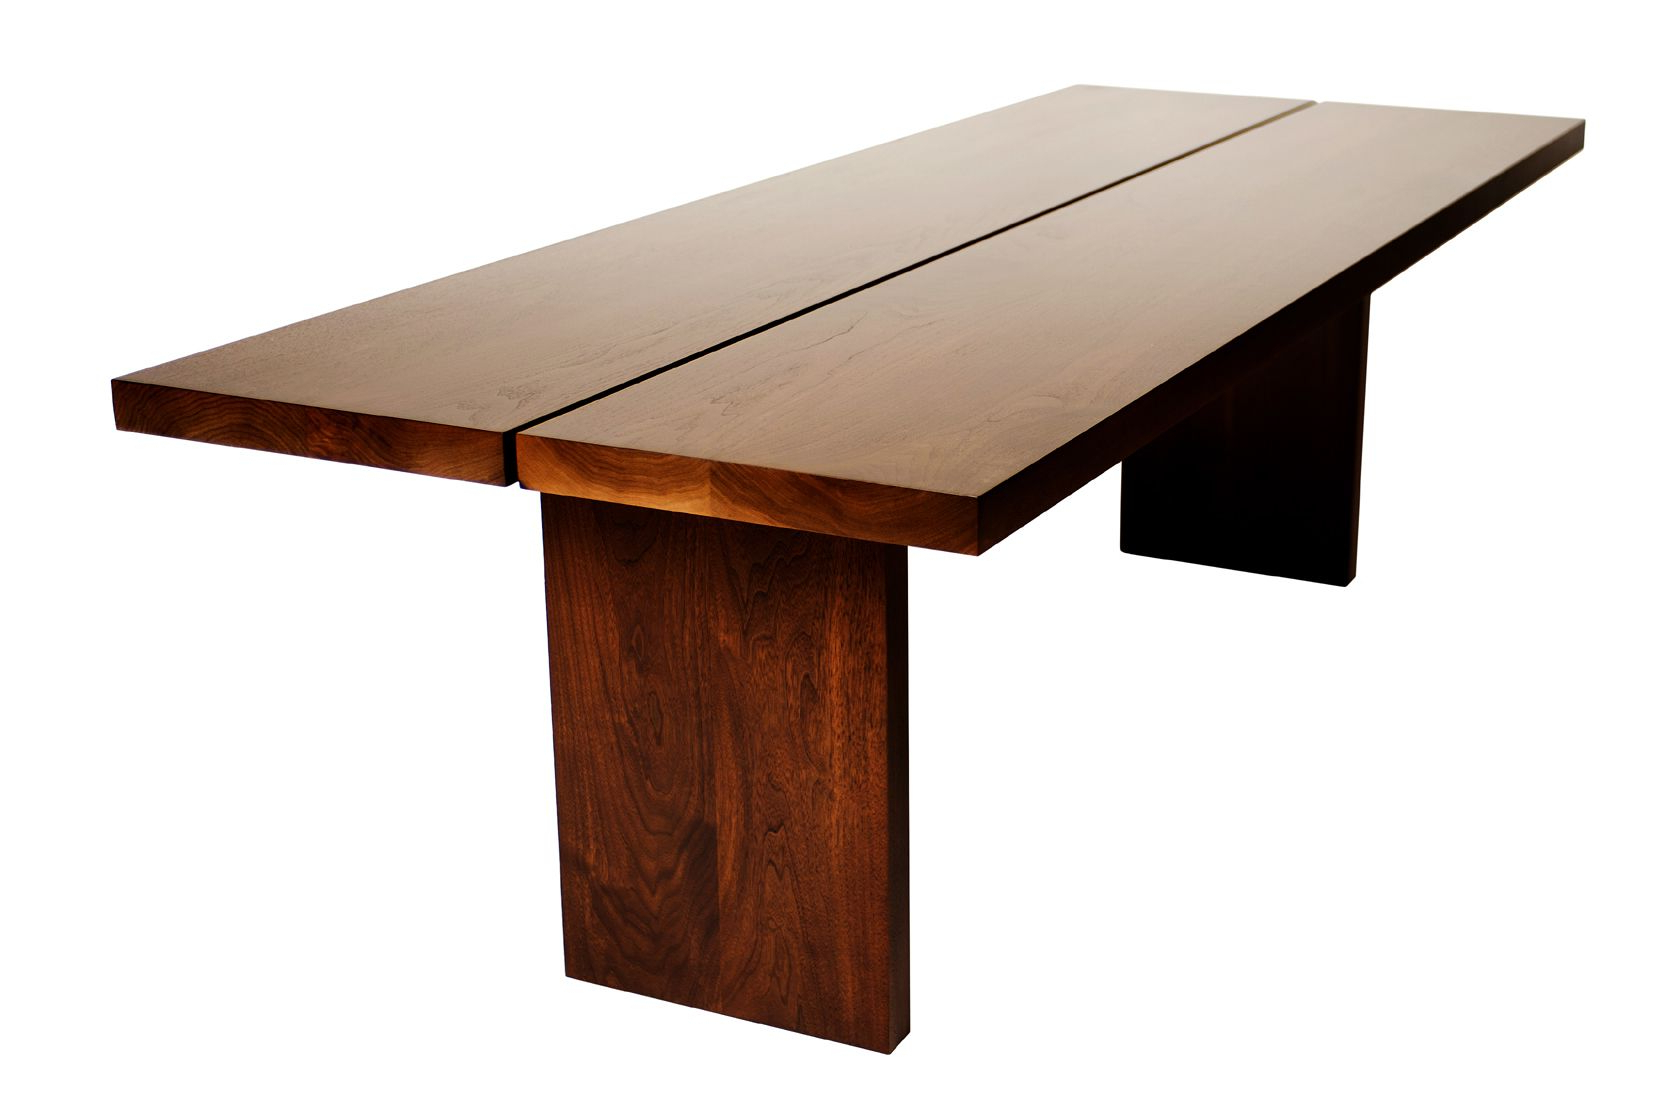 Trendy Transitional 8 Seating Rectangular Helsinki Dining Tables Pertaining To Mara Dining Table (View 6 of 25)